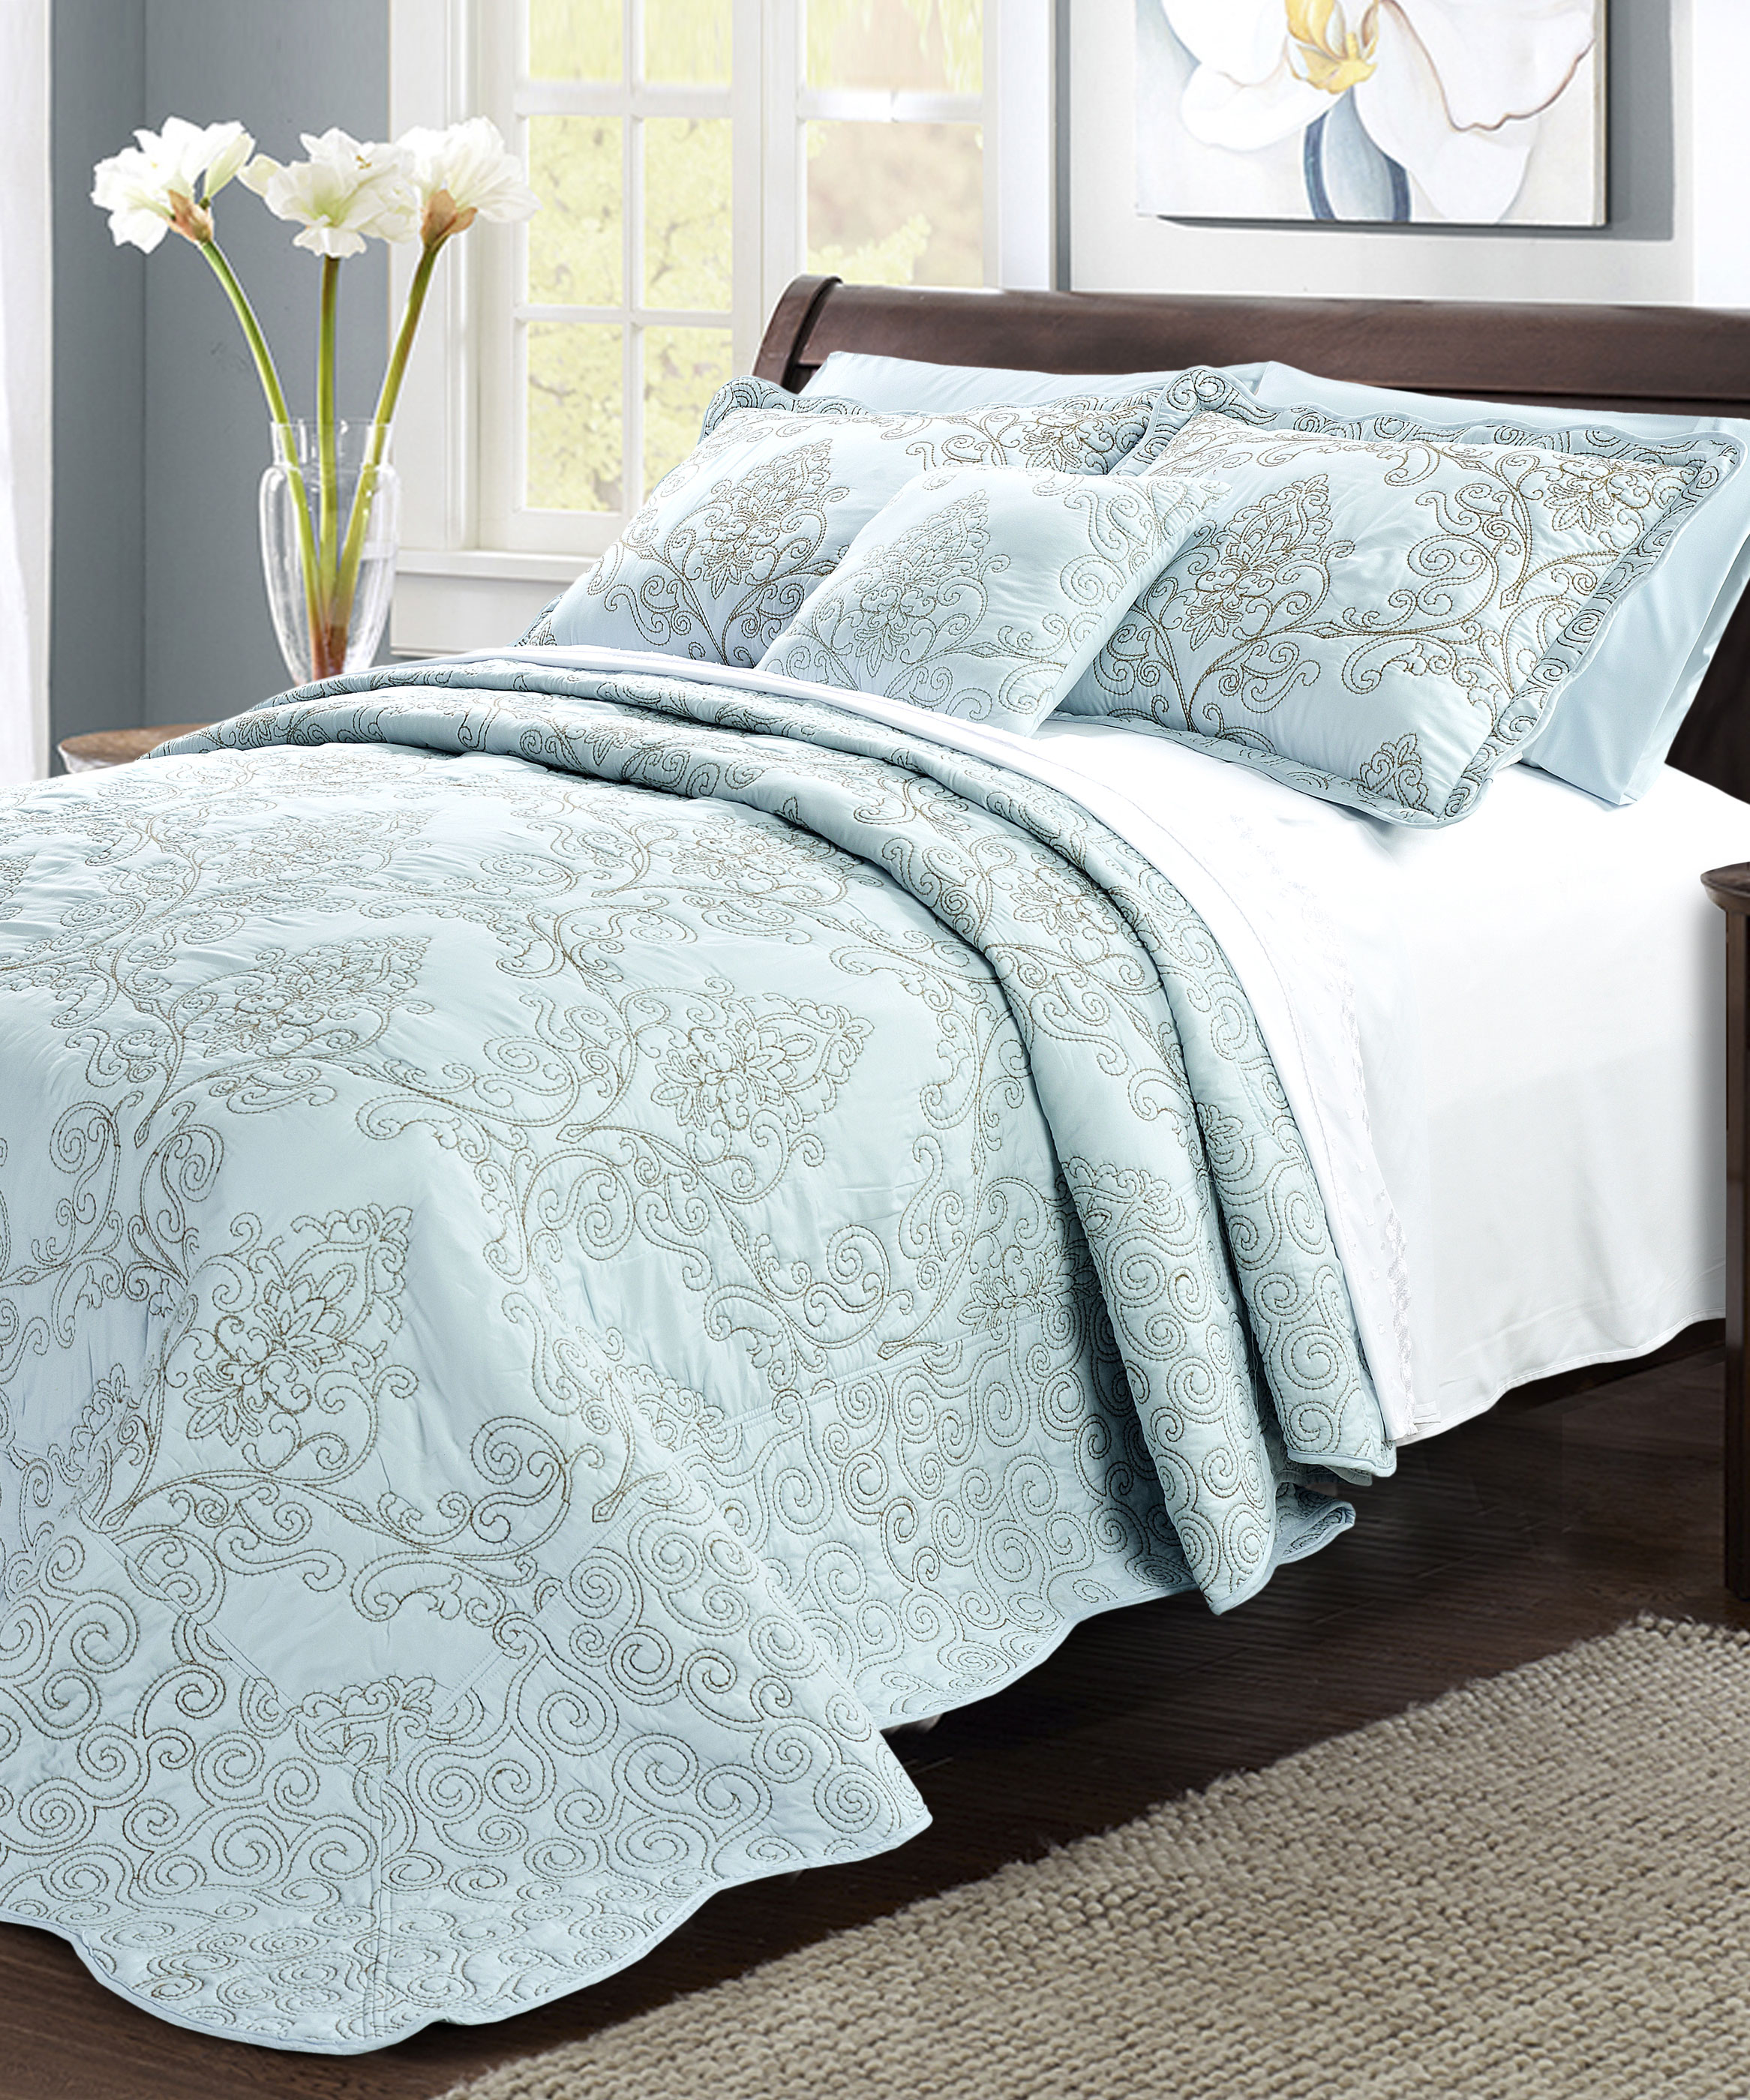 taupe twin s quilted template bedspread velvet scalloped info spreads mink quilt queen compassion